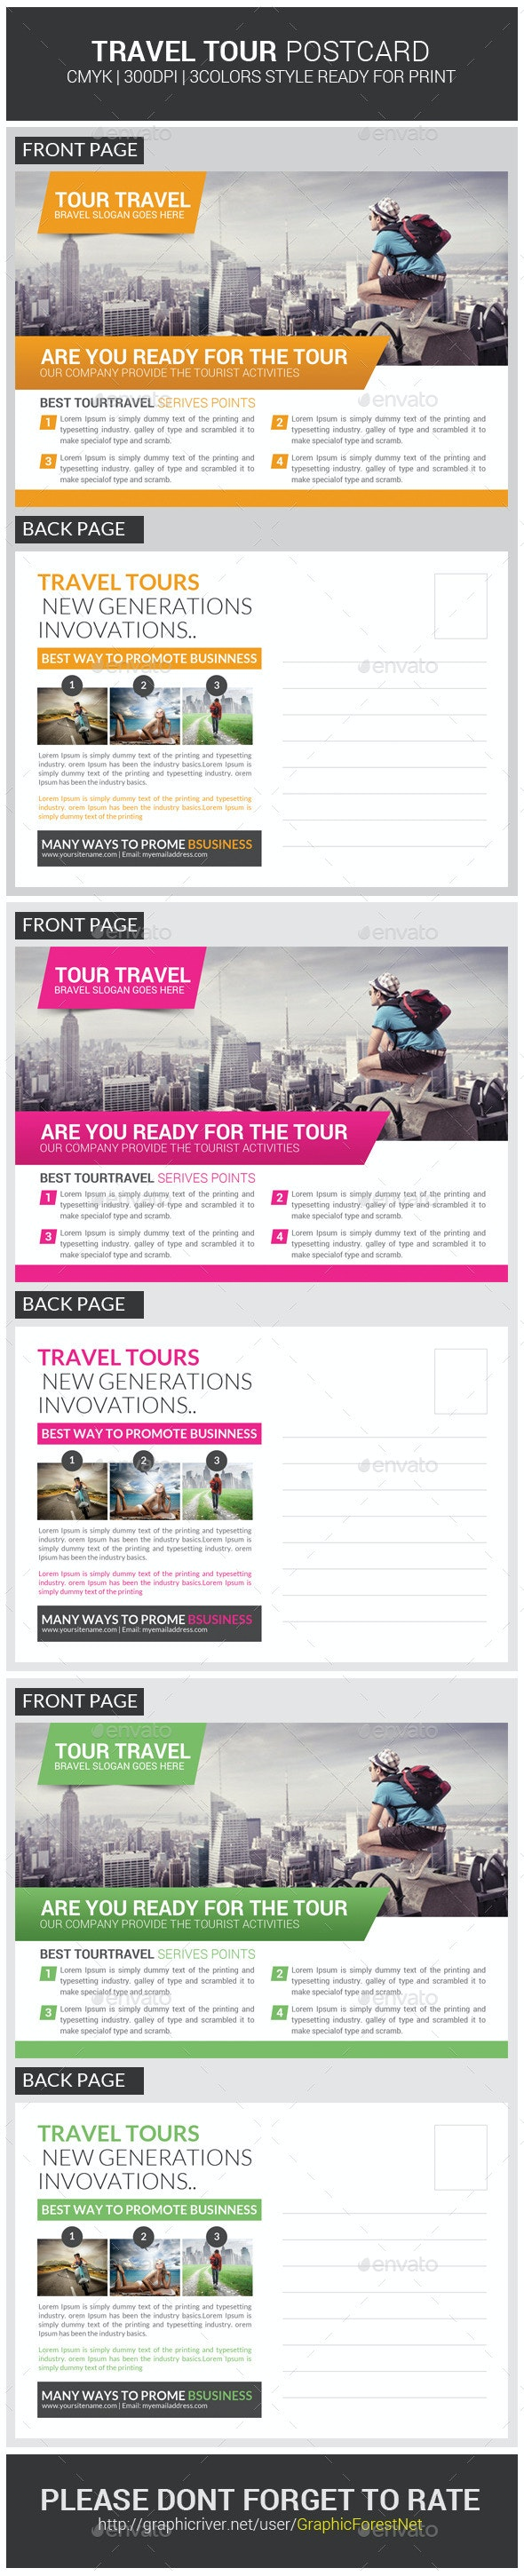 Tour Travel Business Postcard Psd Template - Cards & Invites Print Templates